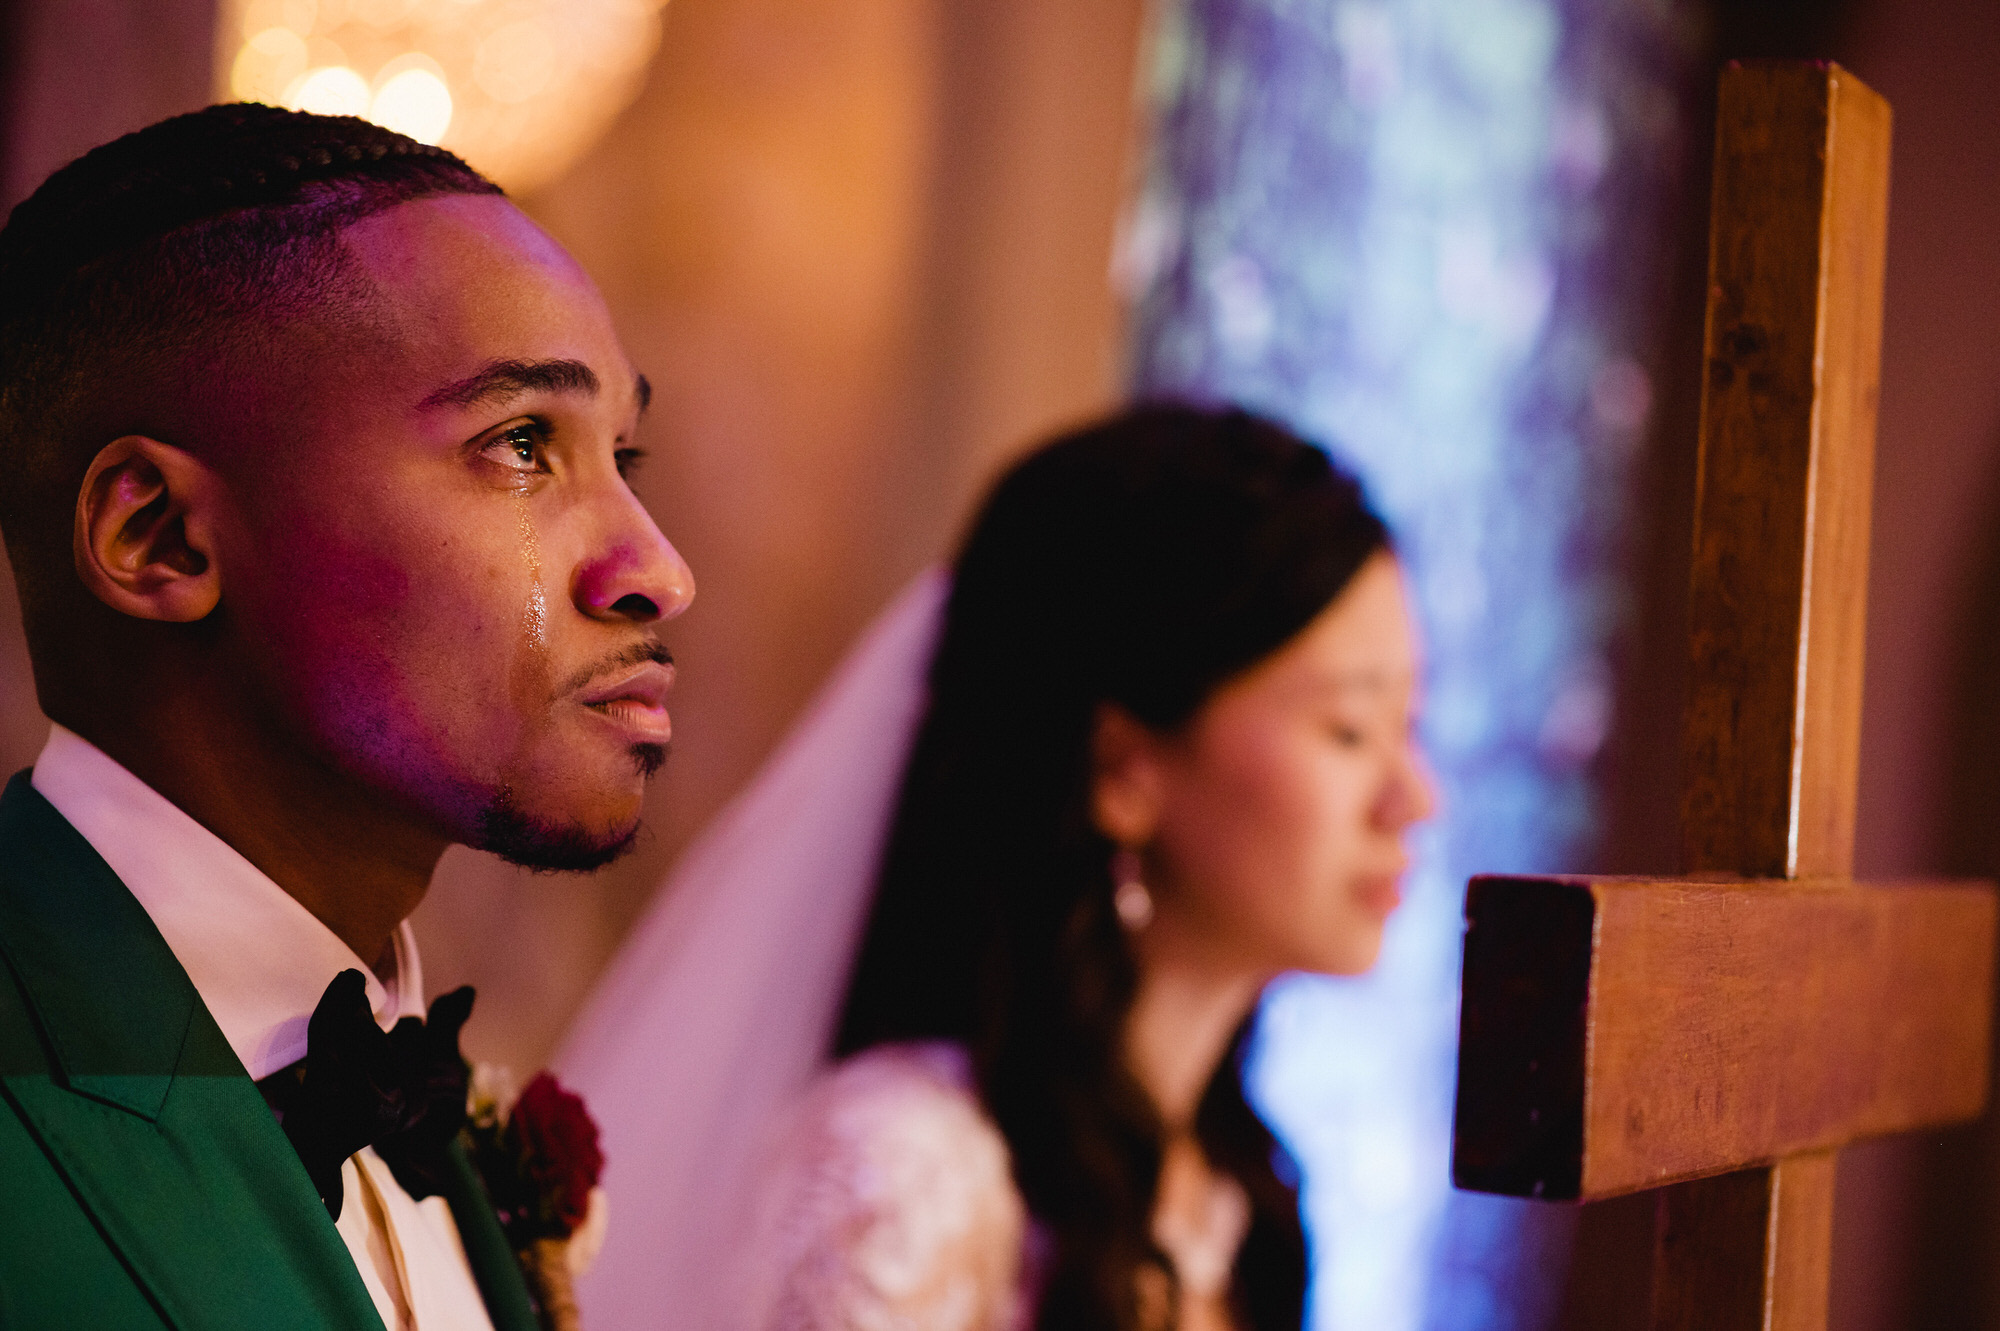 Groom tears up at ceremony - photo by Ken Pak